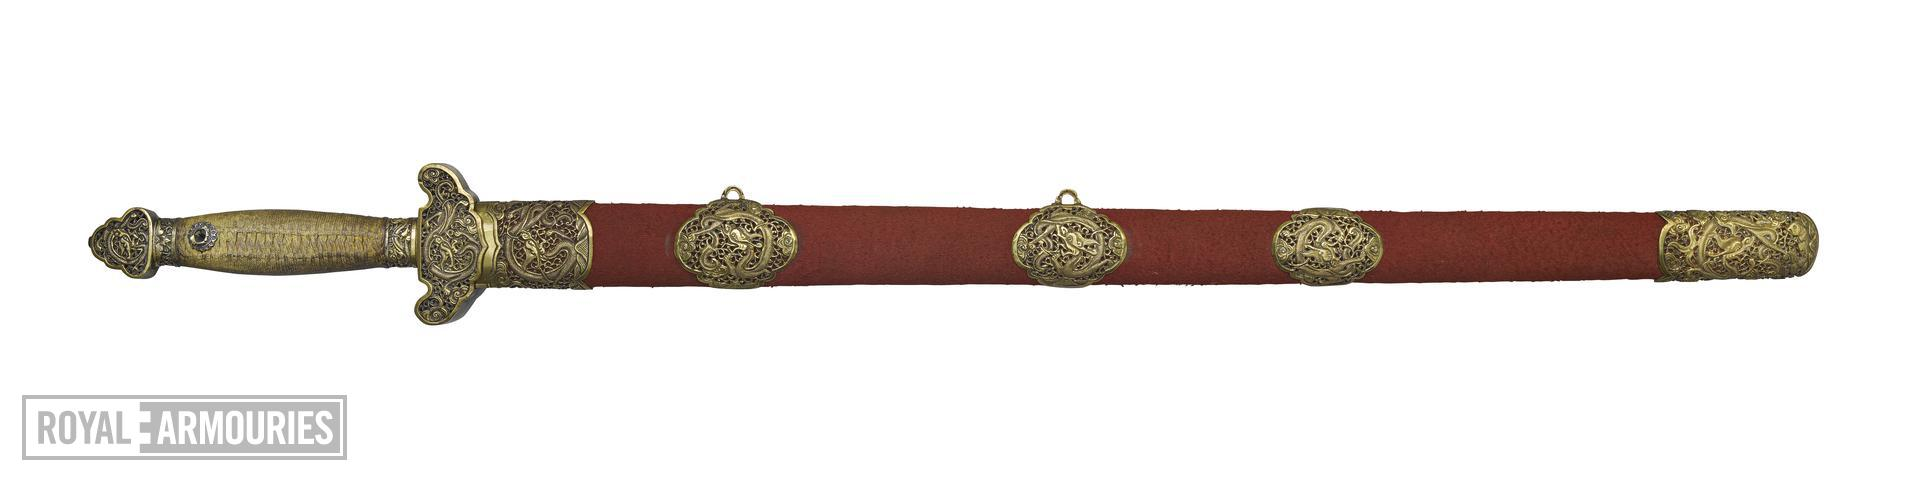 Sword (jian) and scabbard XXVIS.189